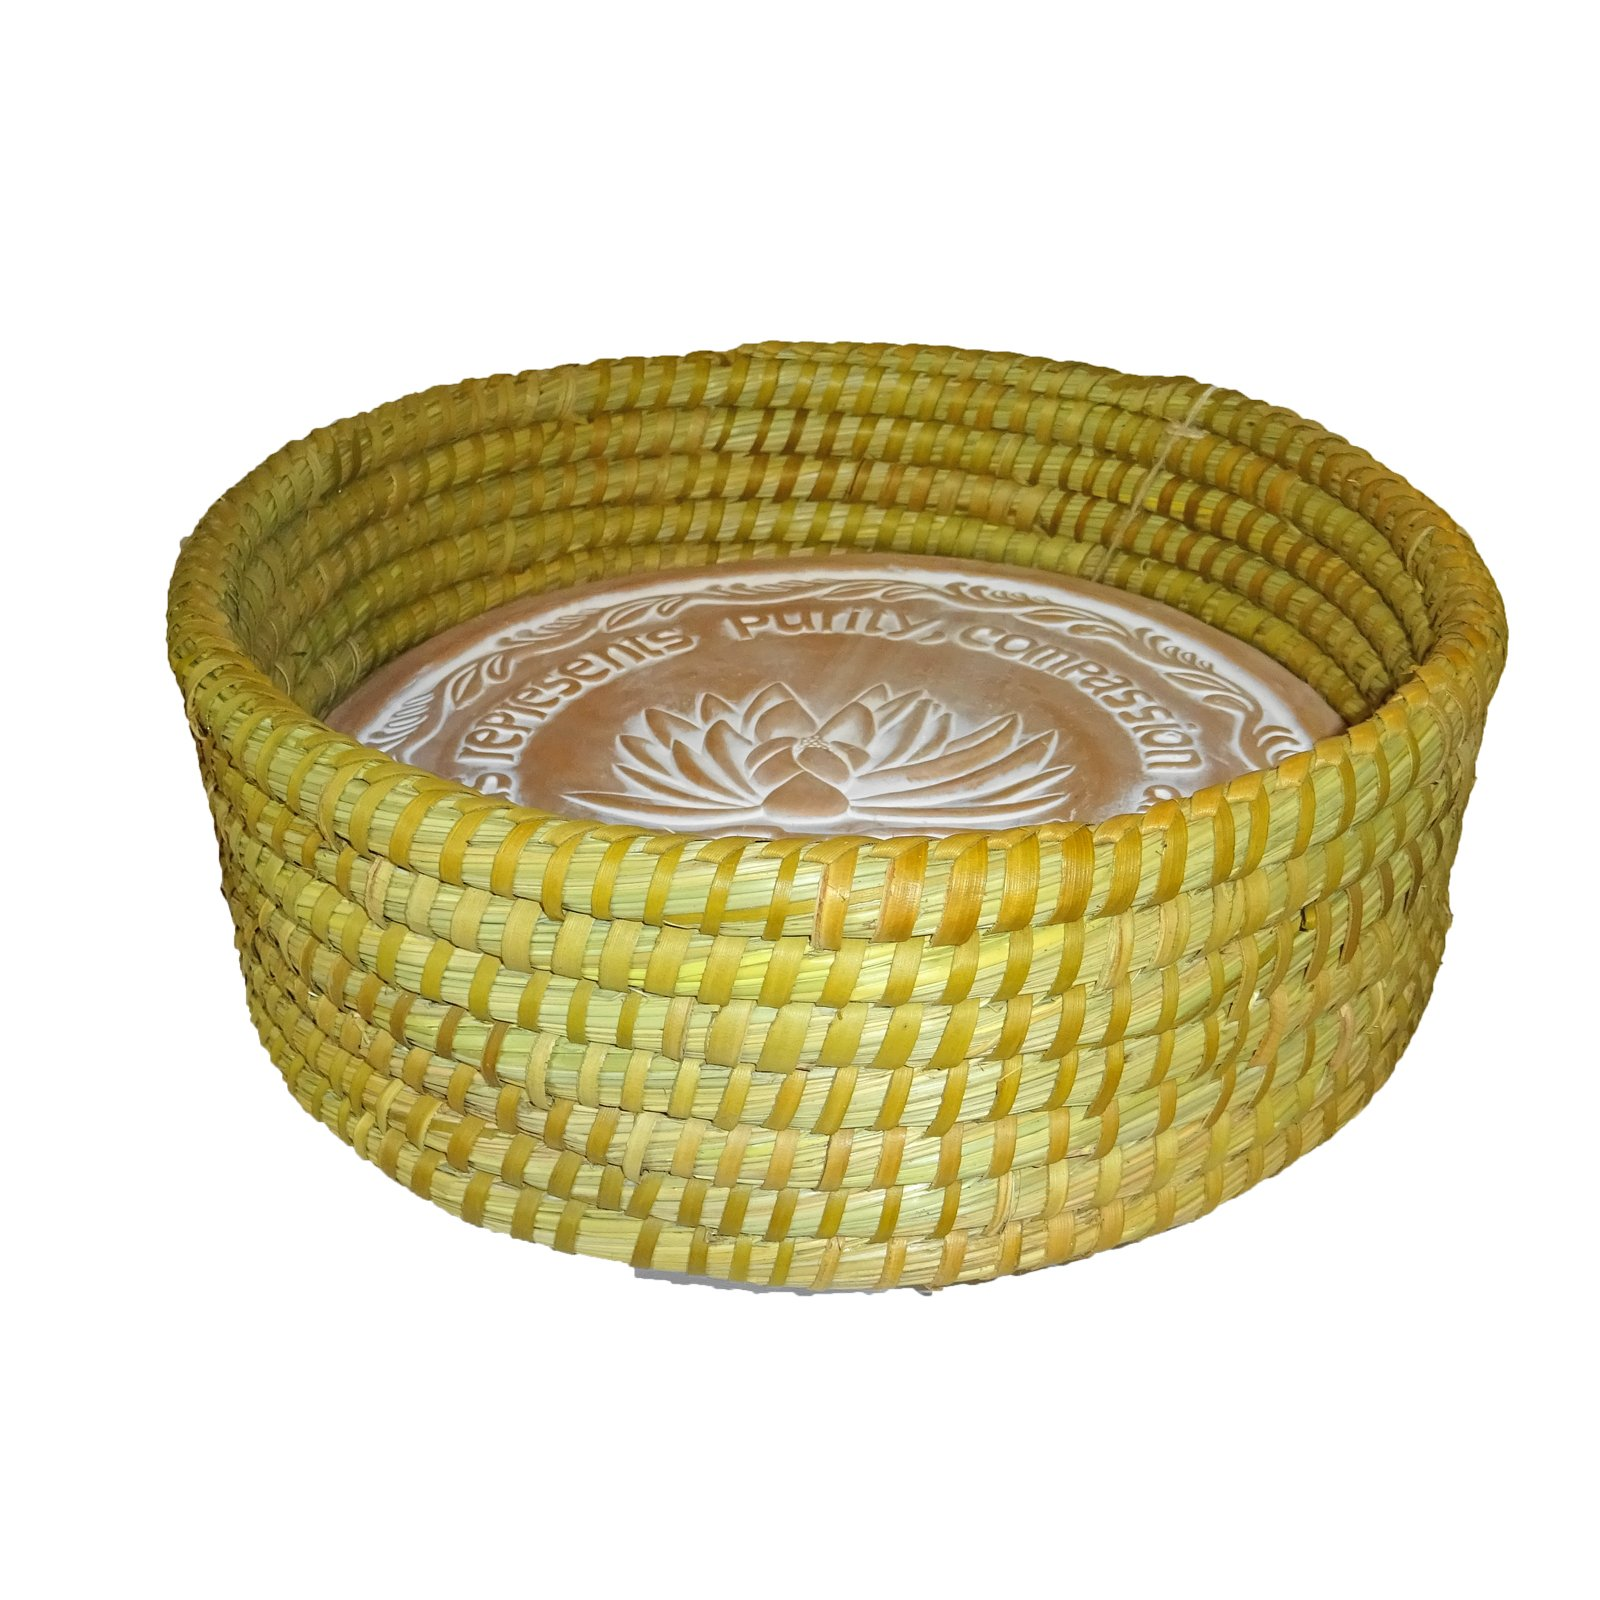 The Crabby Nook Warming Bread Basket with Lotus Warmer Tile Stone Hand Woven For Rolls Appetizers (12 Inch Natural) by The Crabby Nook (Image #2)